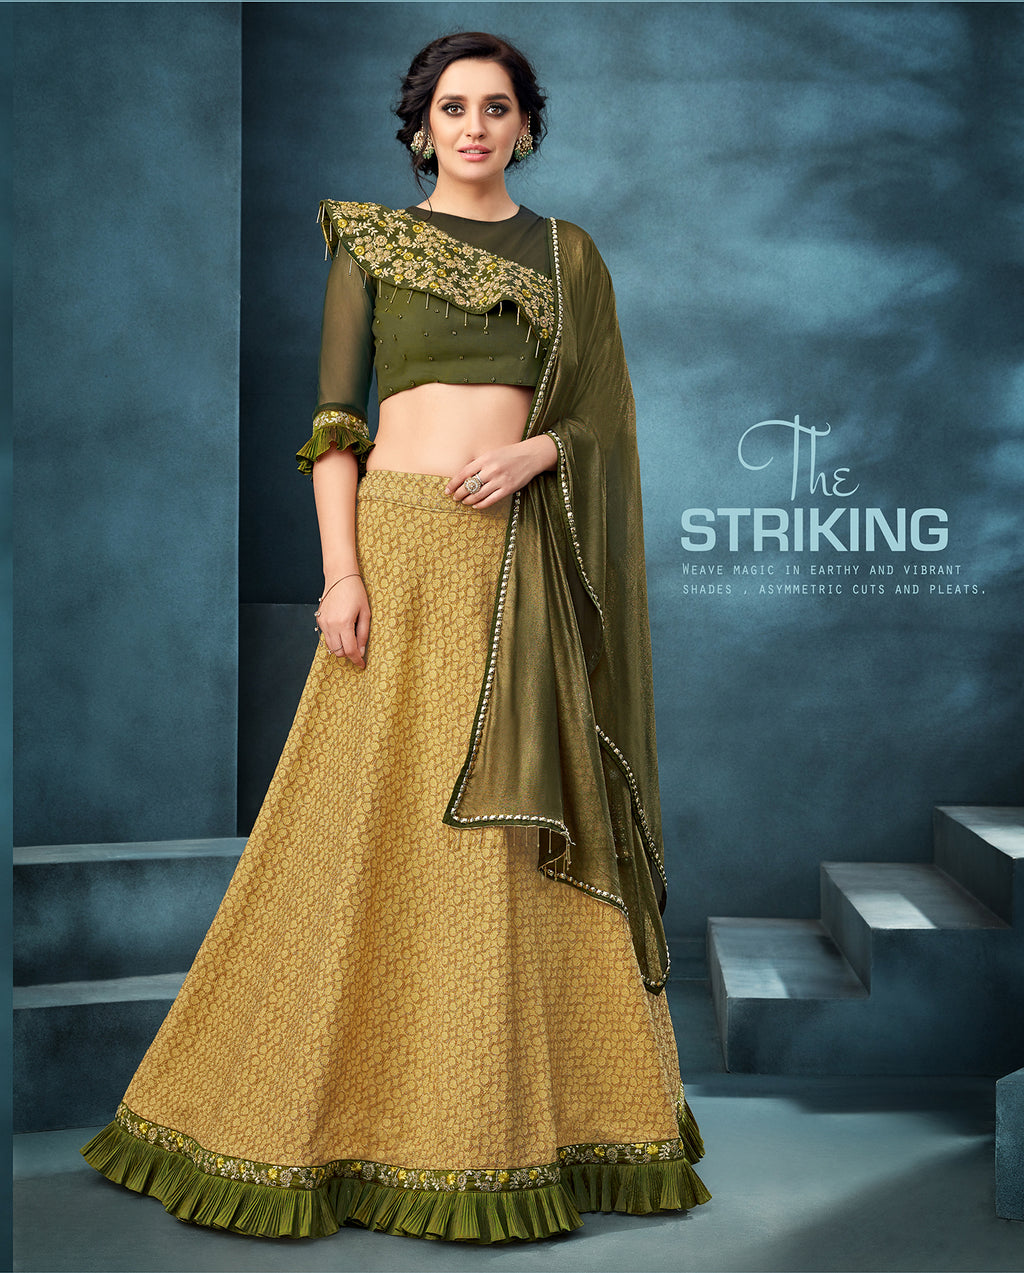 Mustard Silk Jacquard Lehenga Choli Designs For Wedding Online